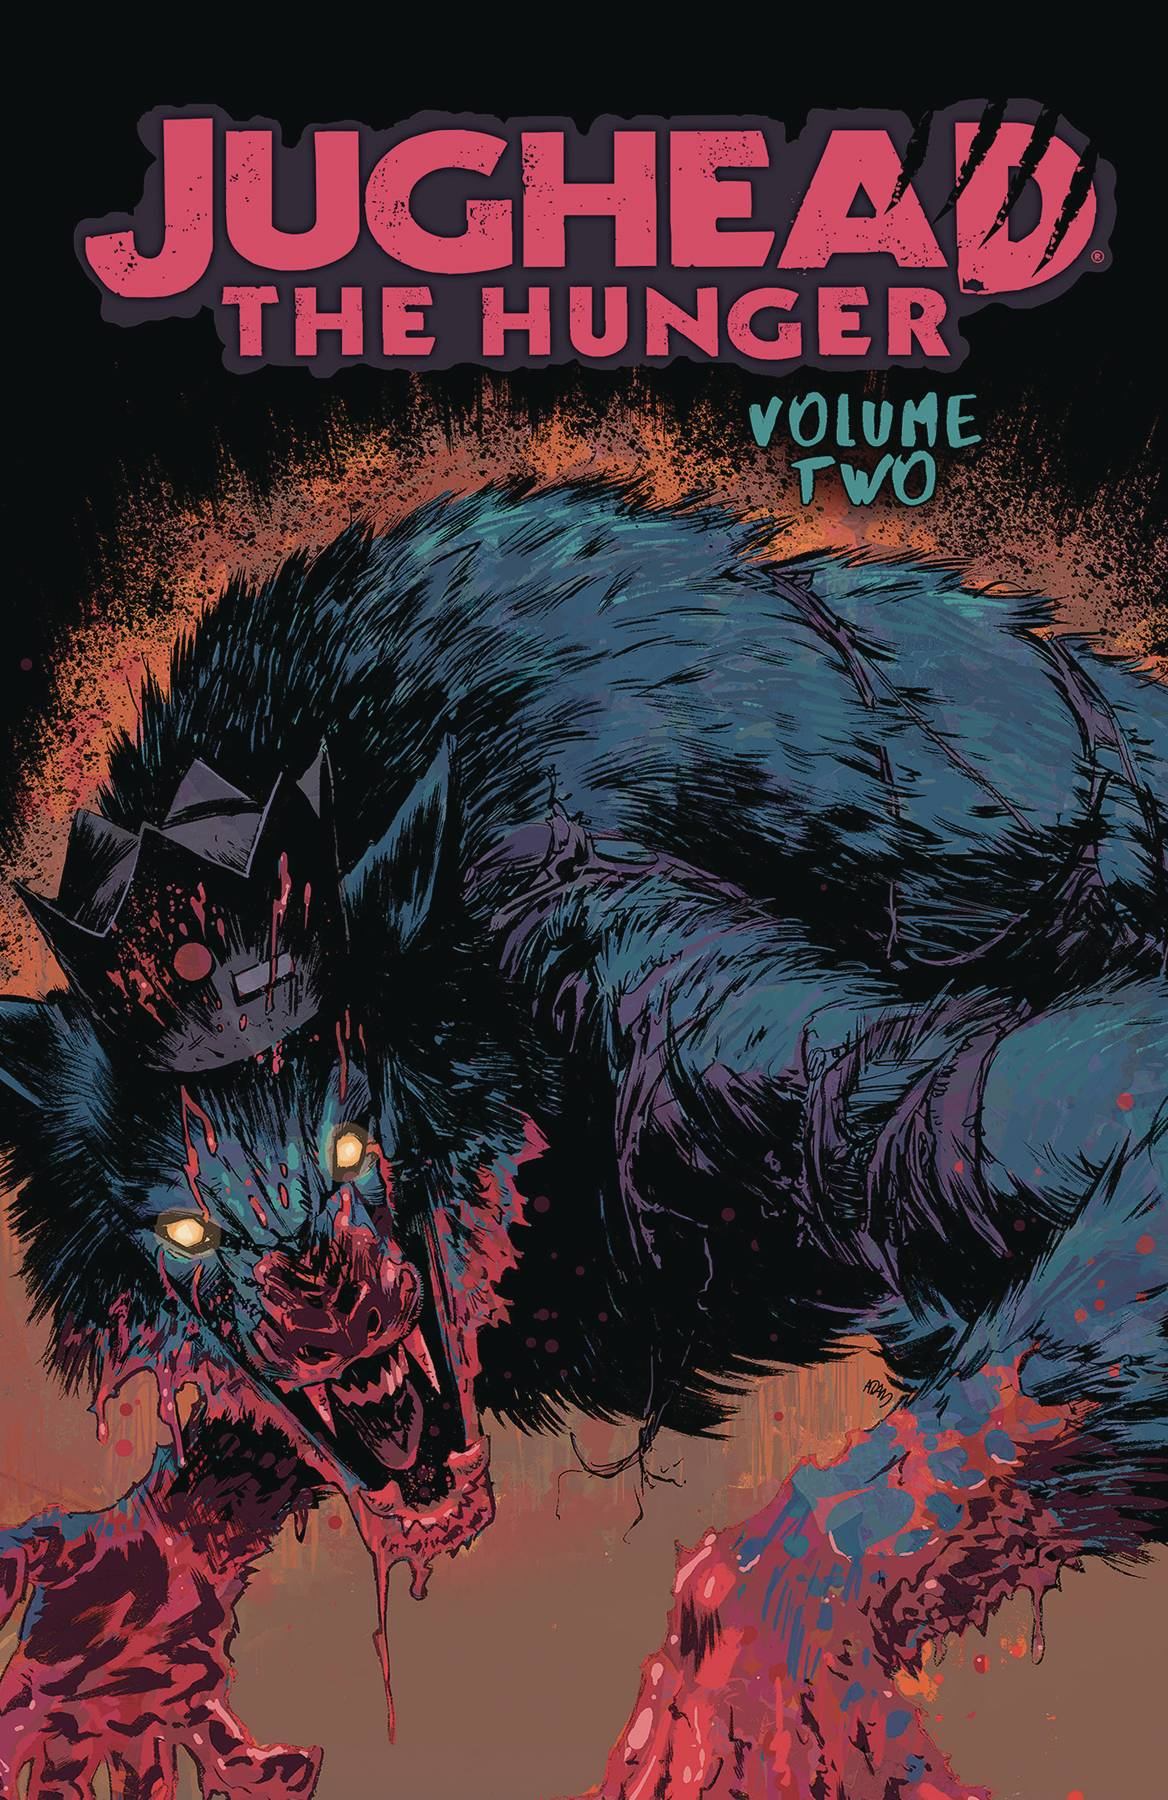 JUGHEAD HUNGER TP VOL 02 (NOV181538) (MR)